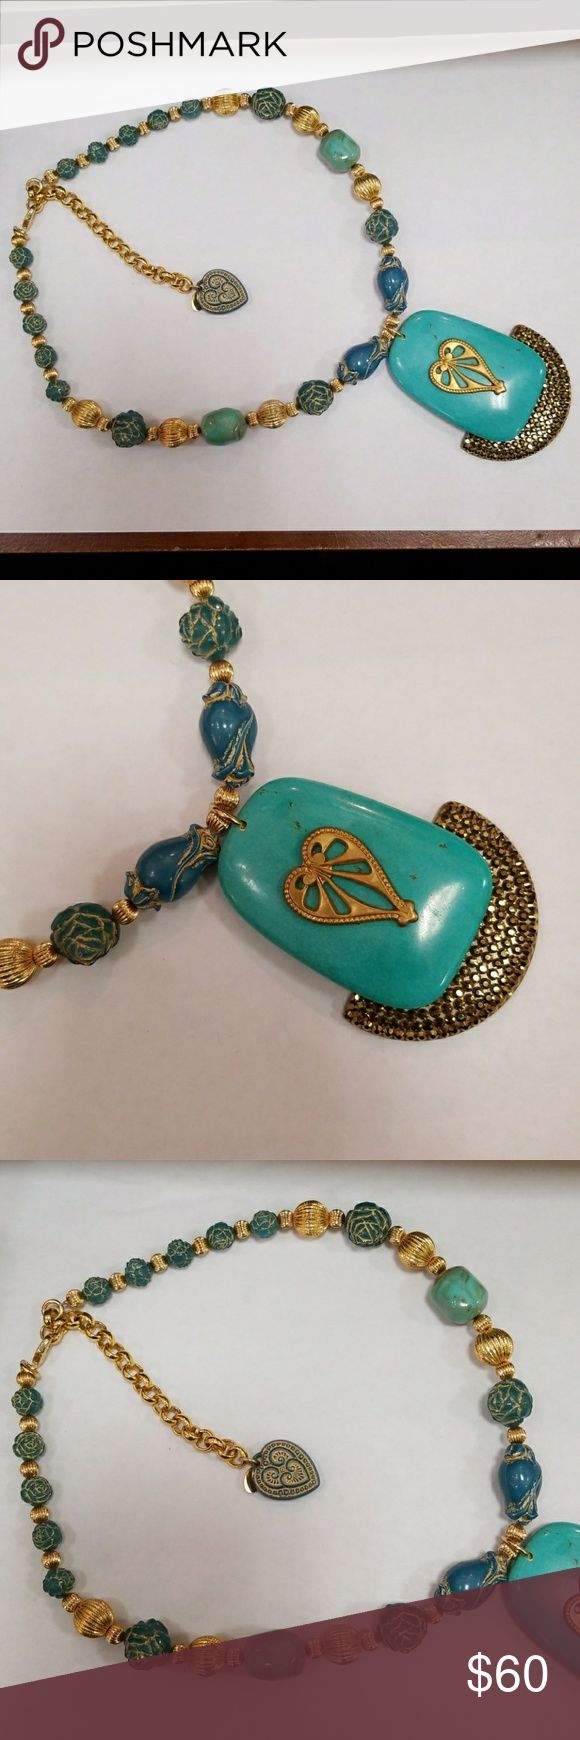 Original Tarina Tarantino Turquoise Heart Necklace Stunning!!! This is a turquoise and gold Lucite necklace. Features turquoise rose beads and gold ball beads. The medallion hanging is made out if turquoise looking stone with heart center and gold  Sworvaski Crystal semi circle attached. Claw Clasp with dangle heart . This piece is sizeable. The detail in this necklace is Amazing! just look Tarina Tarantino Jewelry Necklaces